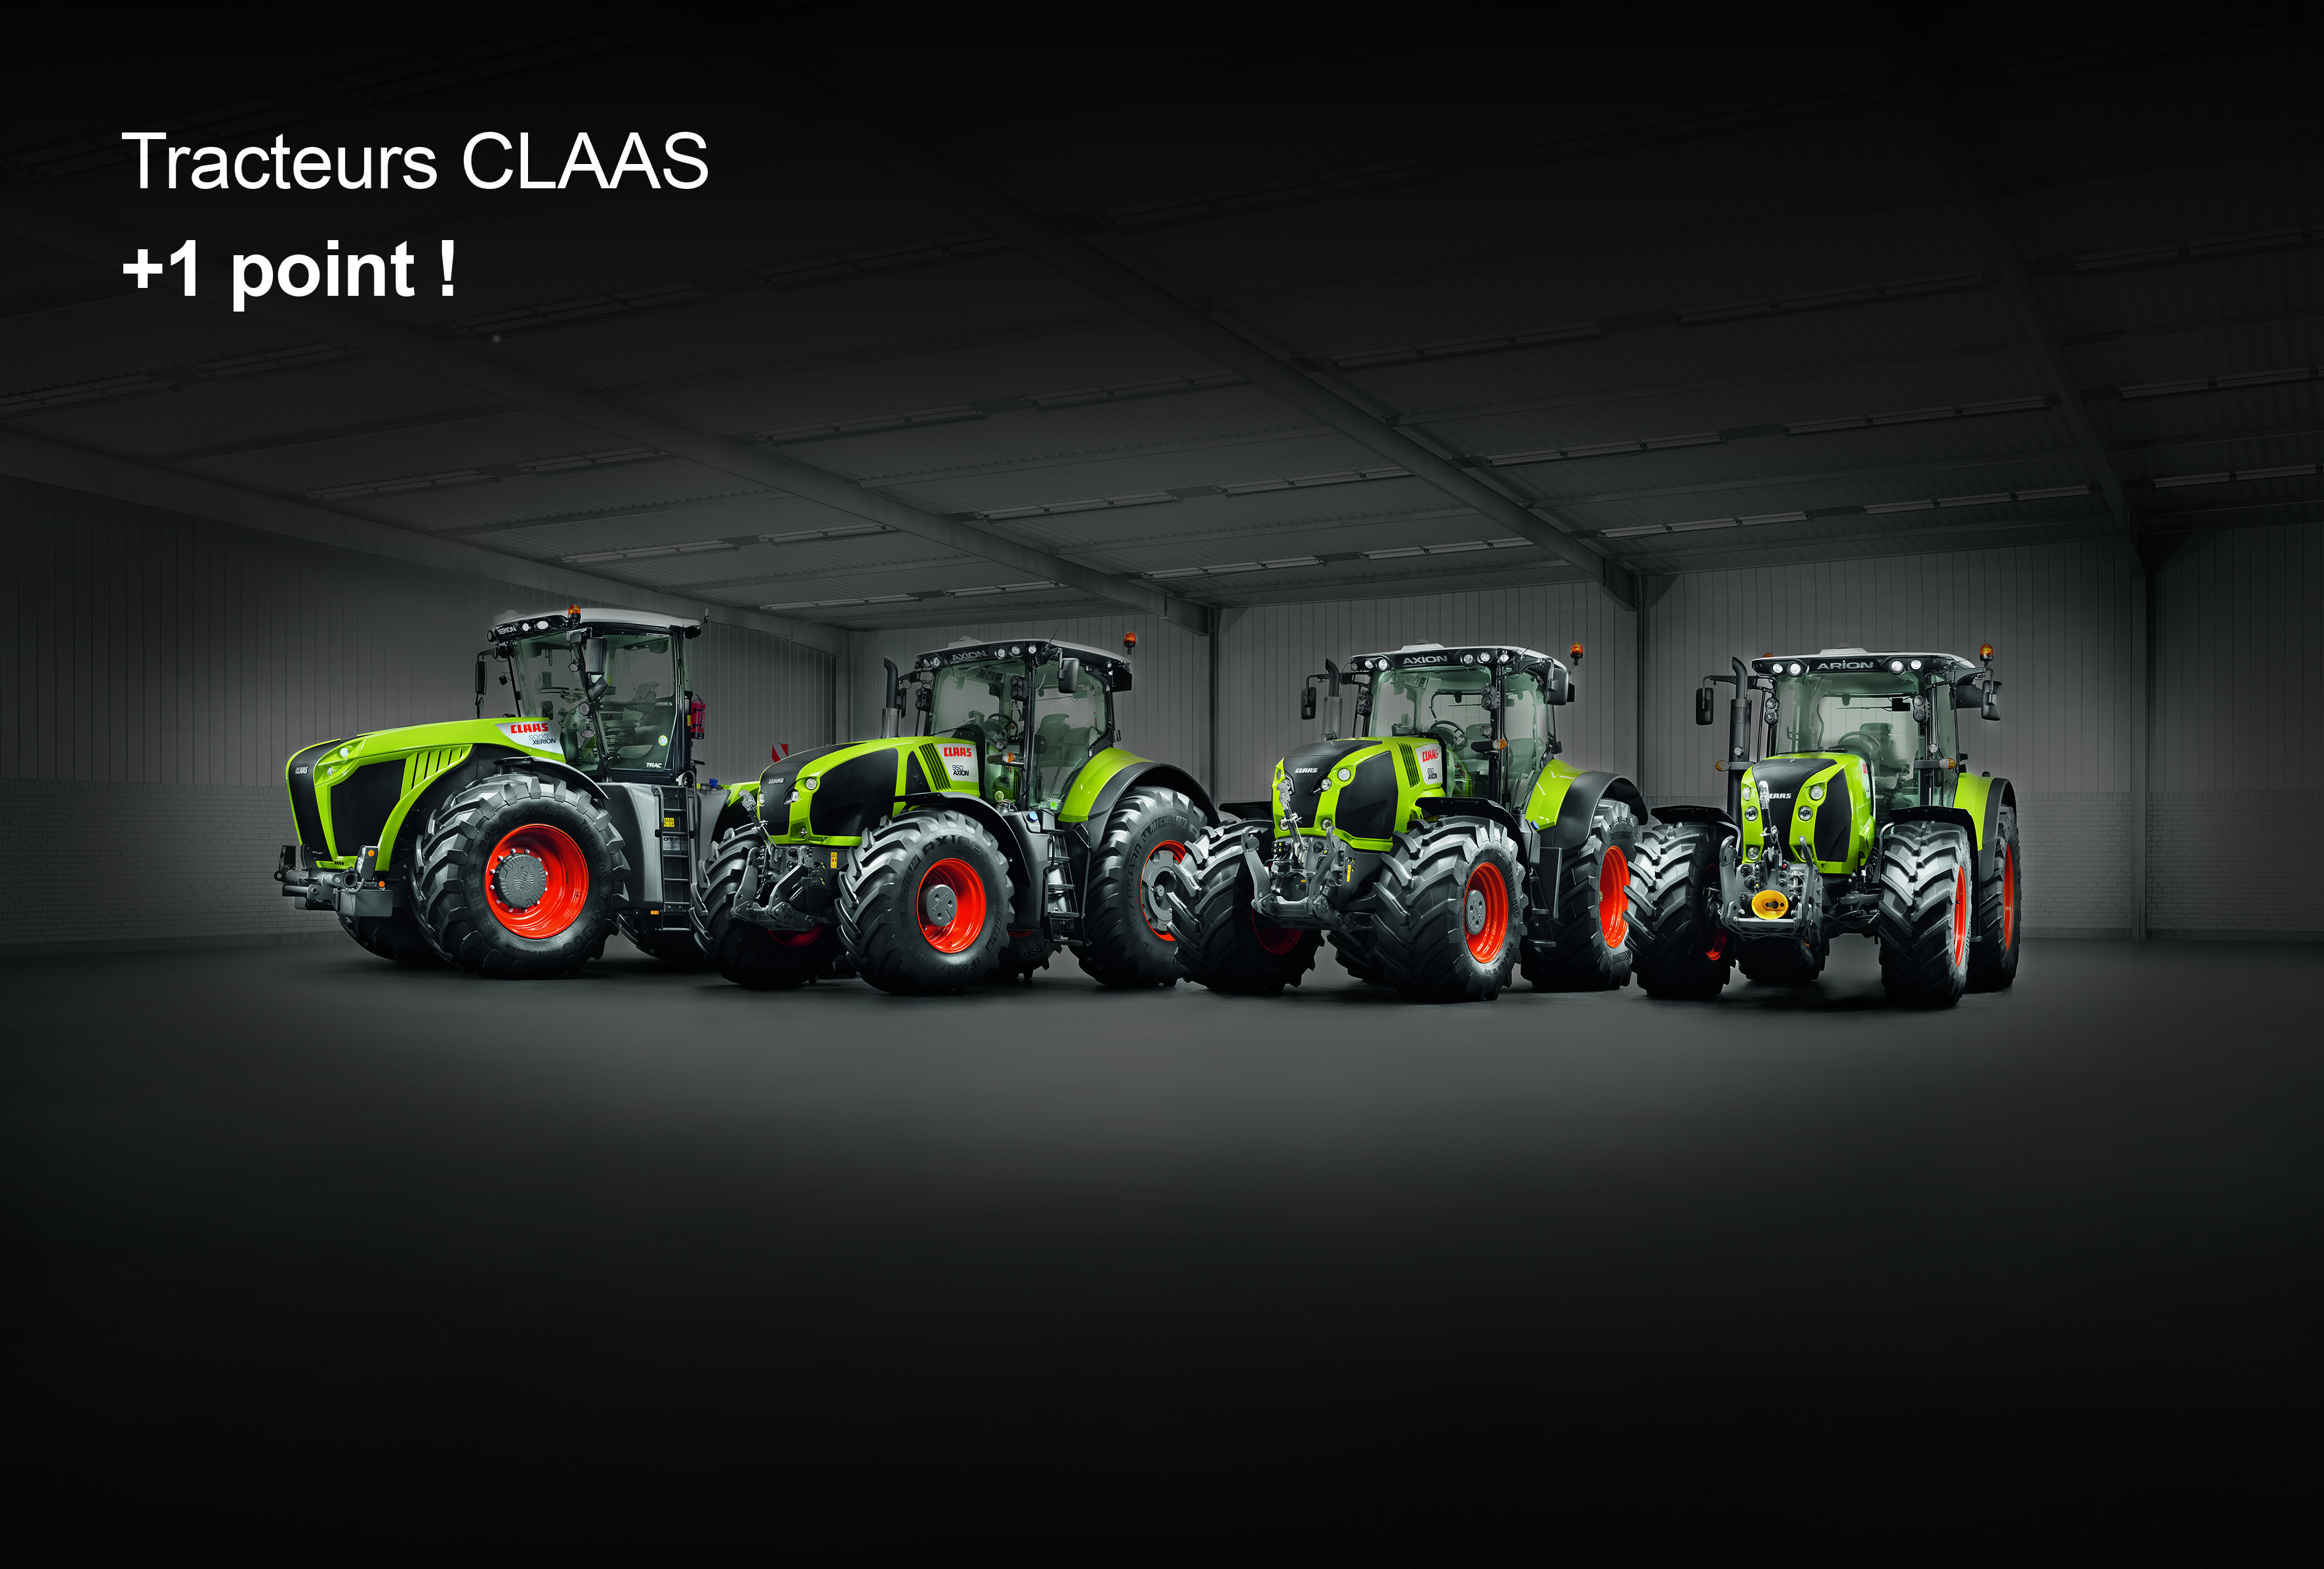 Nouvelle gamme tracteurs CLAAS